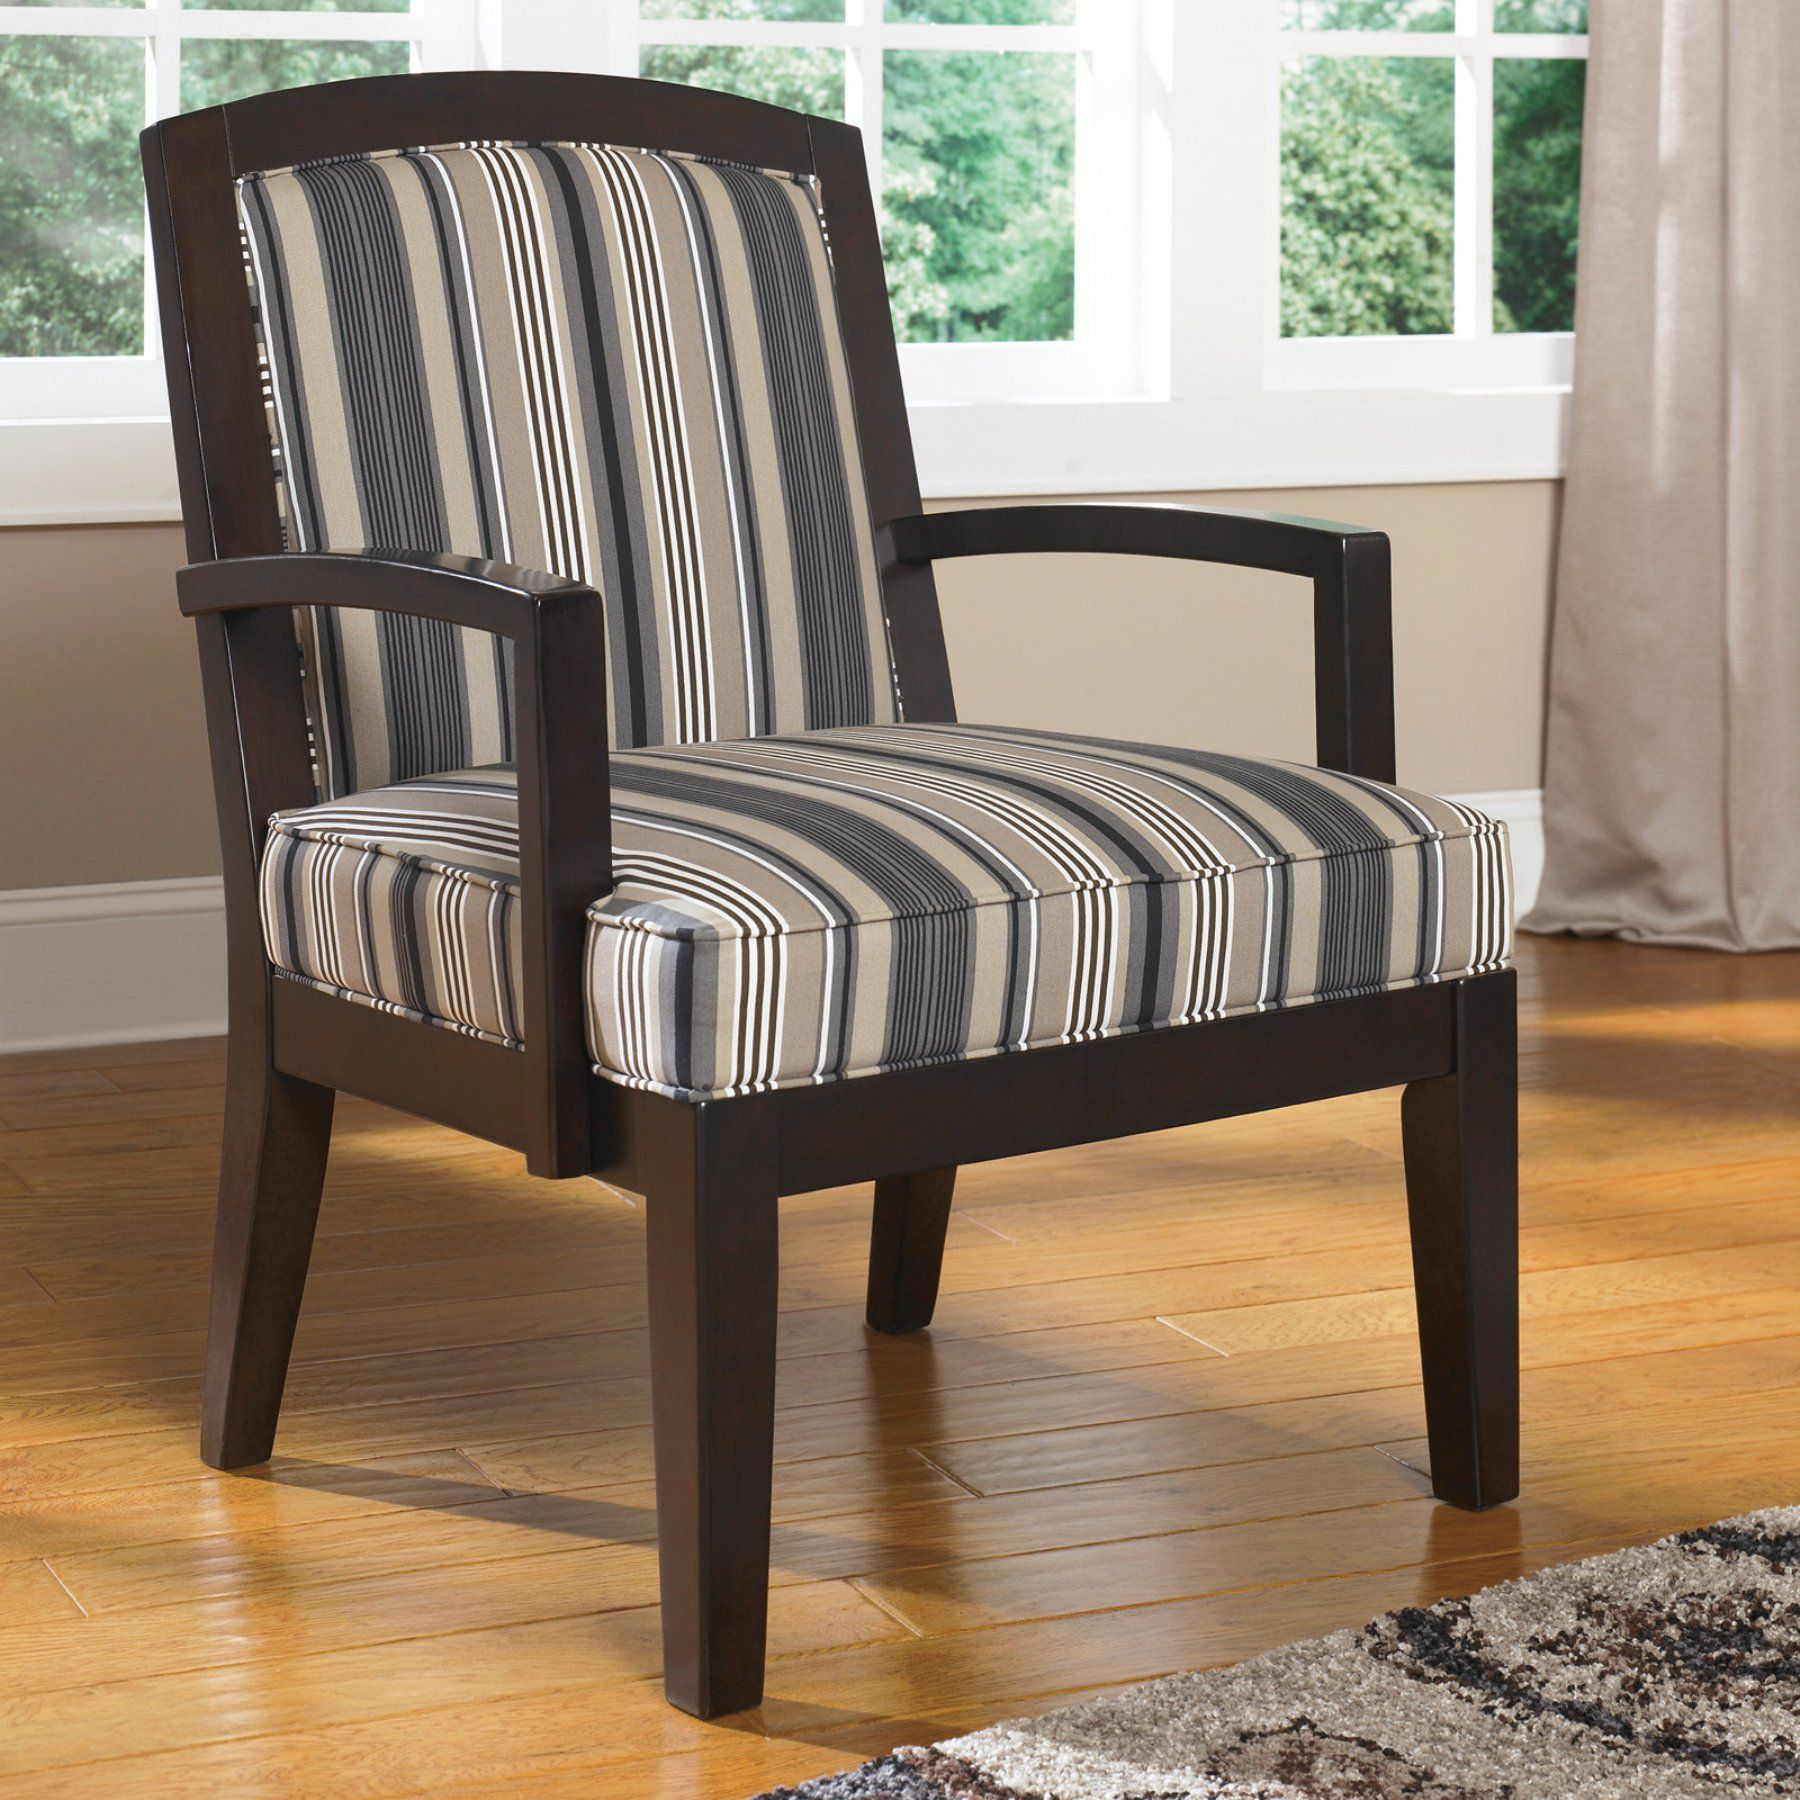 Malik Furniture | Small Bedroom Chairs | Small Armchair ...